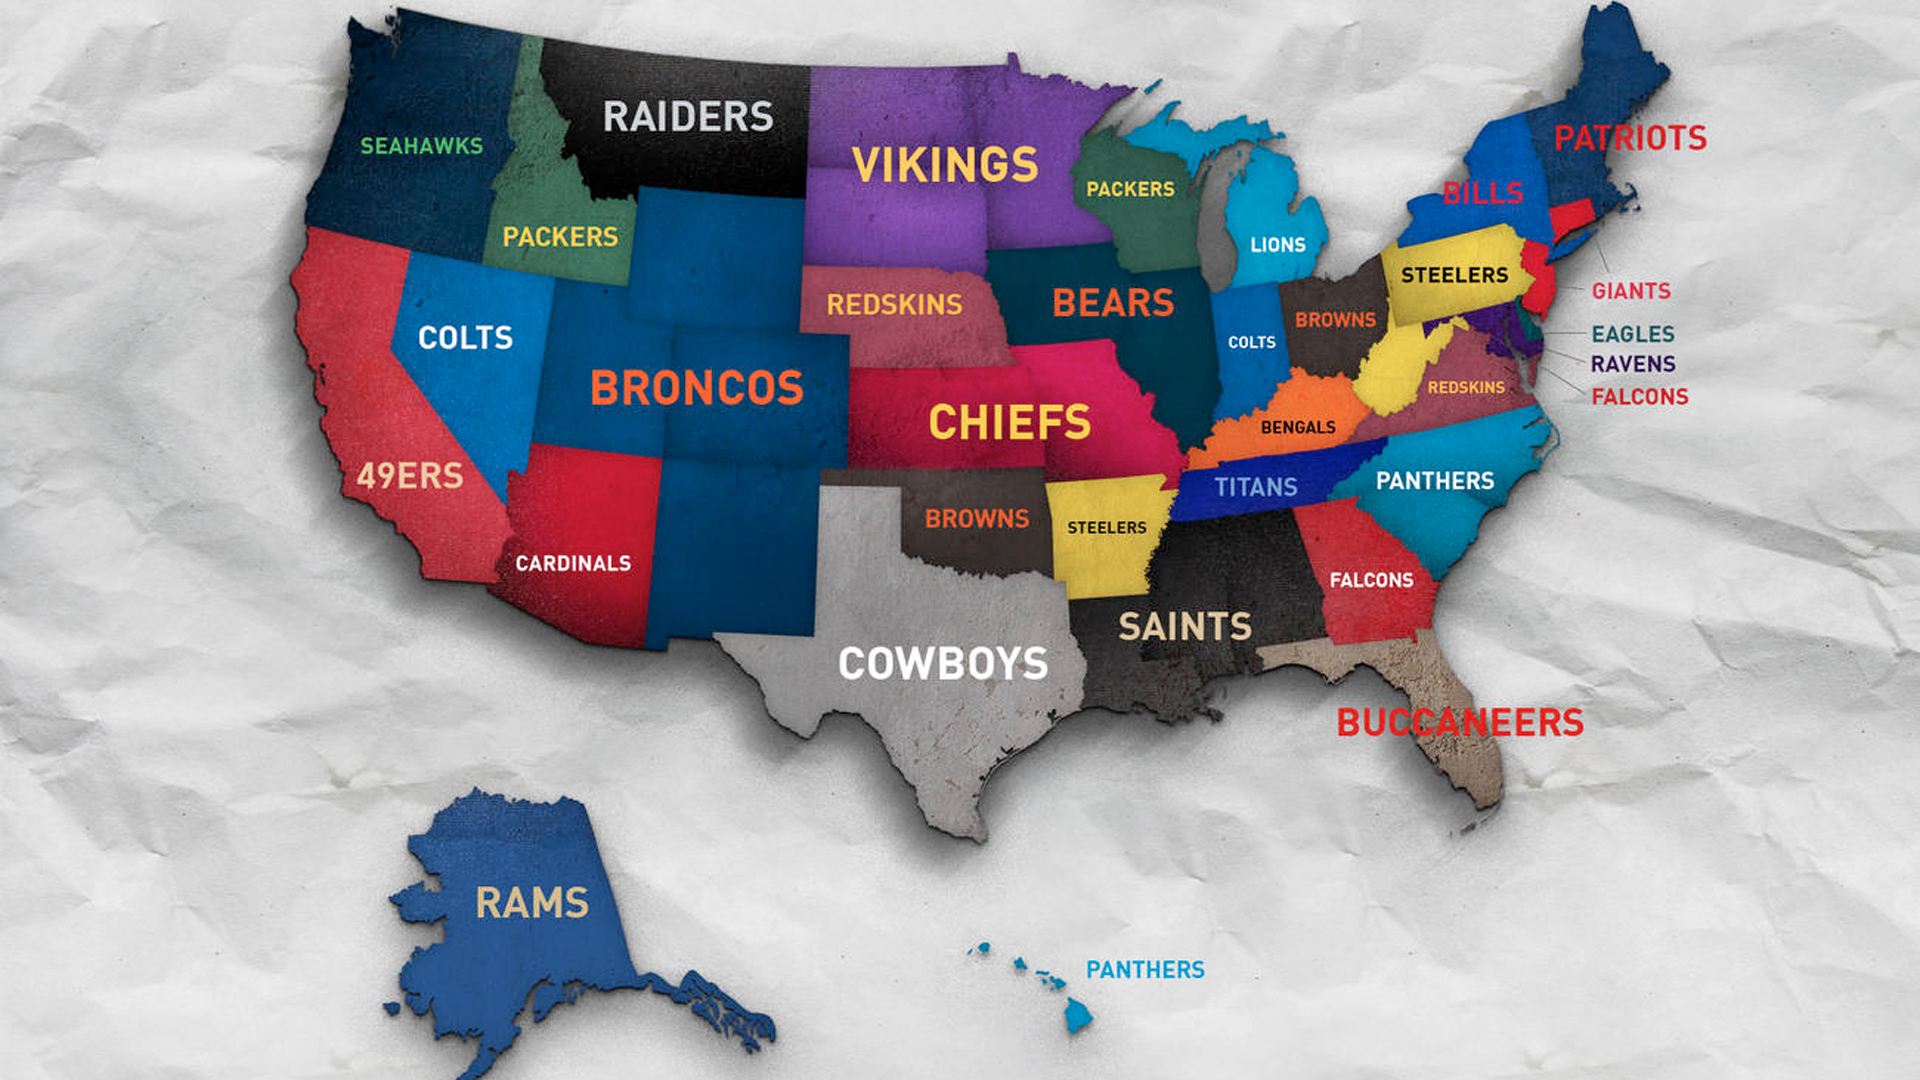 See which NFL teams have top selling jerseys by state ... on super bowl team map, basketball team map, pittsburgh steelers map, favorite baseball team map, major league baseball team map, fifa team map, nfc team map, nhl team map, new england patriots map, mlb team map, cincinnati reds map, qmjhl team map, nhl fan map, nba team map, ncaa team map, cfl team map, hockey team map, mls team map, washington redskins map, afl team map,